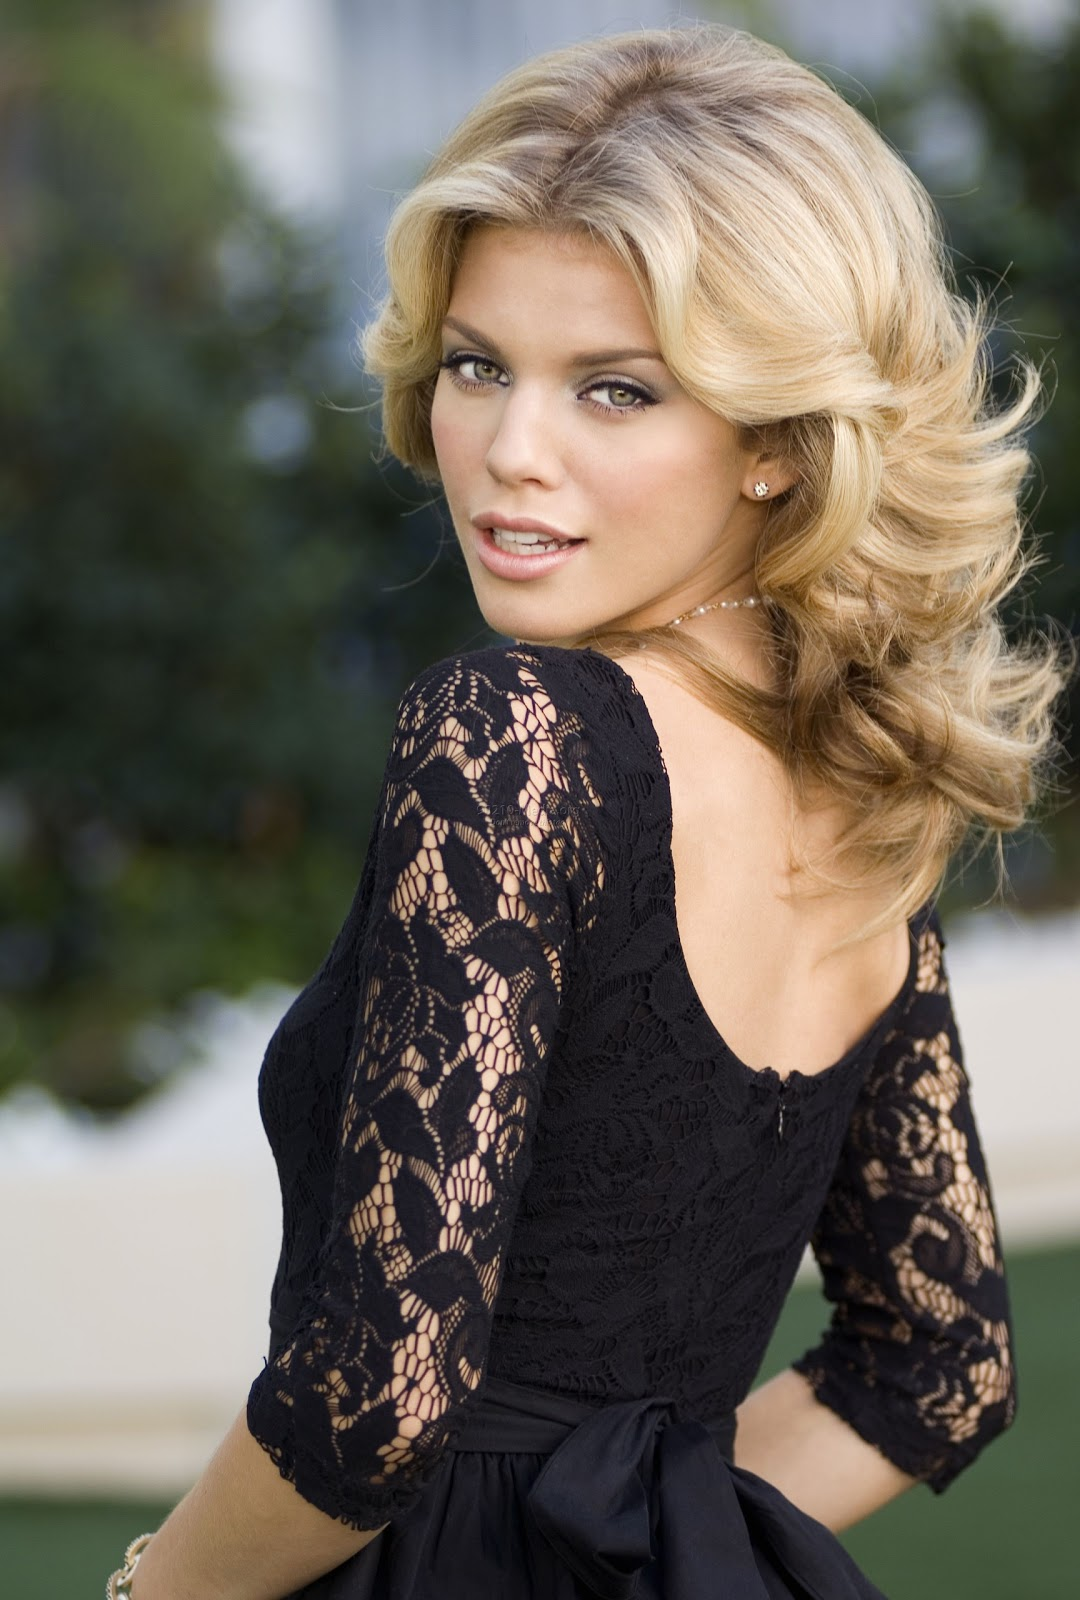 For the Annalynne mccord twitter amusing message